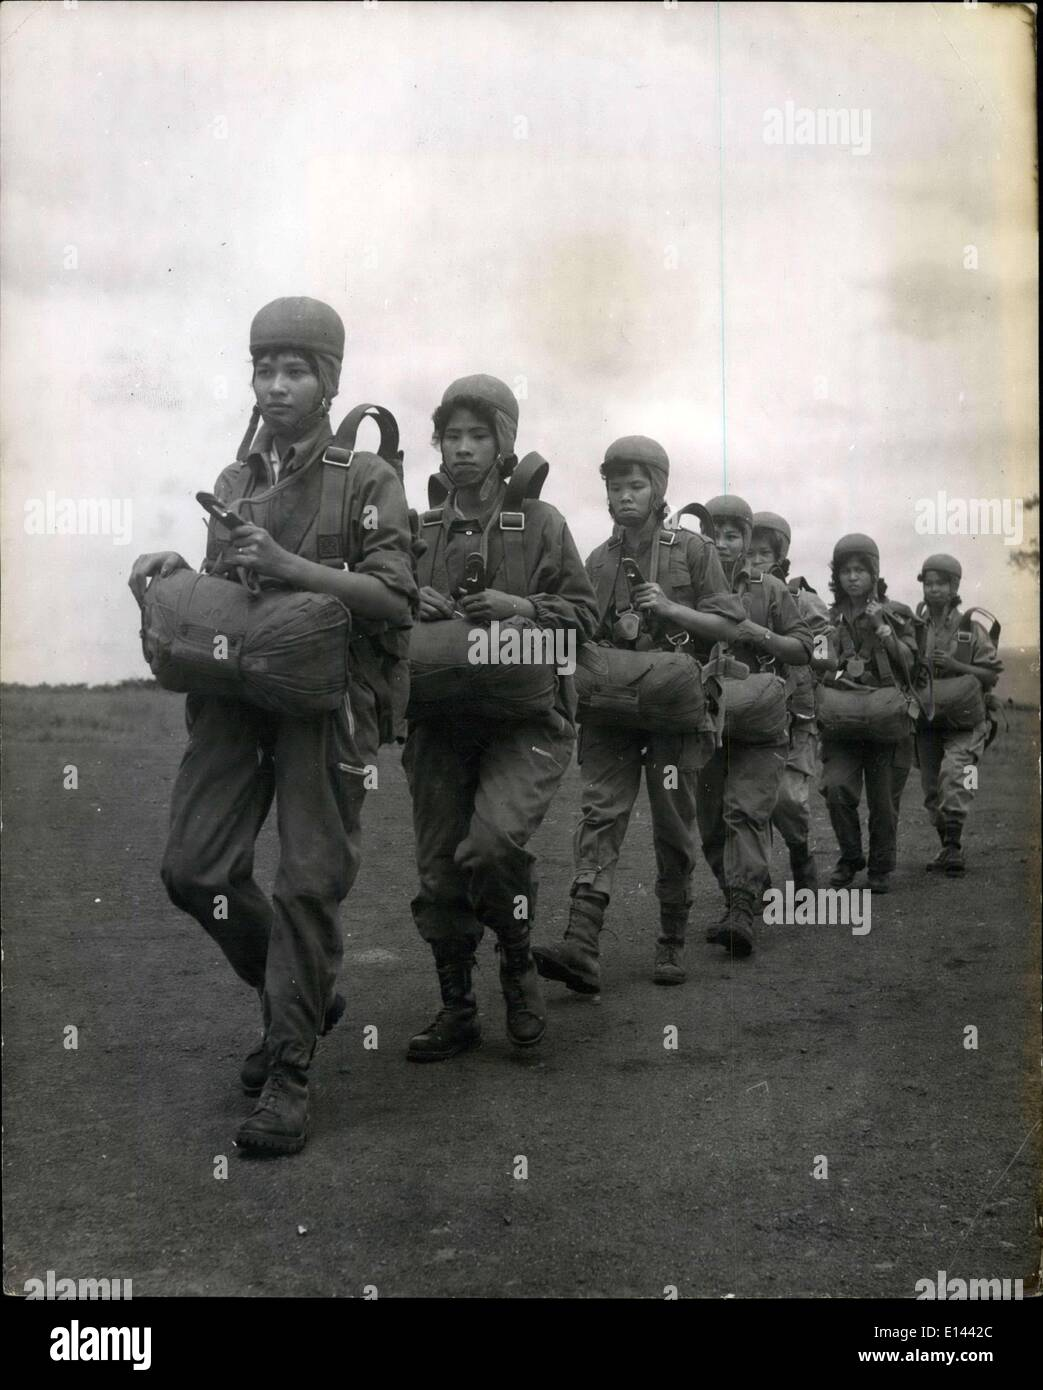 Apr. 04, 2012 - After Training the girls Morning to be parachtuste march back to thei Quartesr at the training school near Saigon. - Stock Image